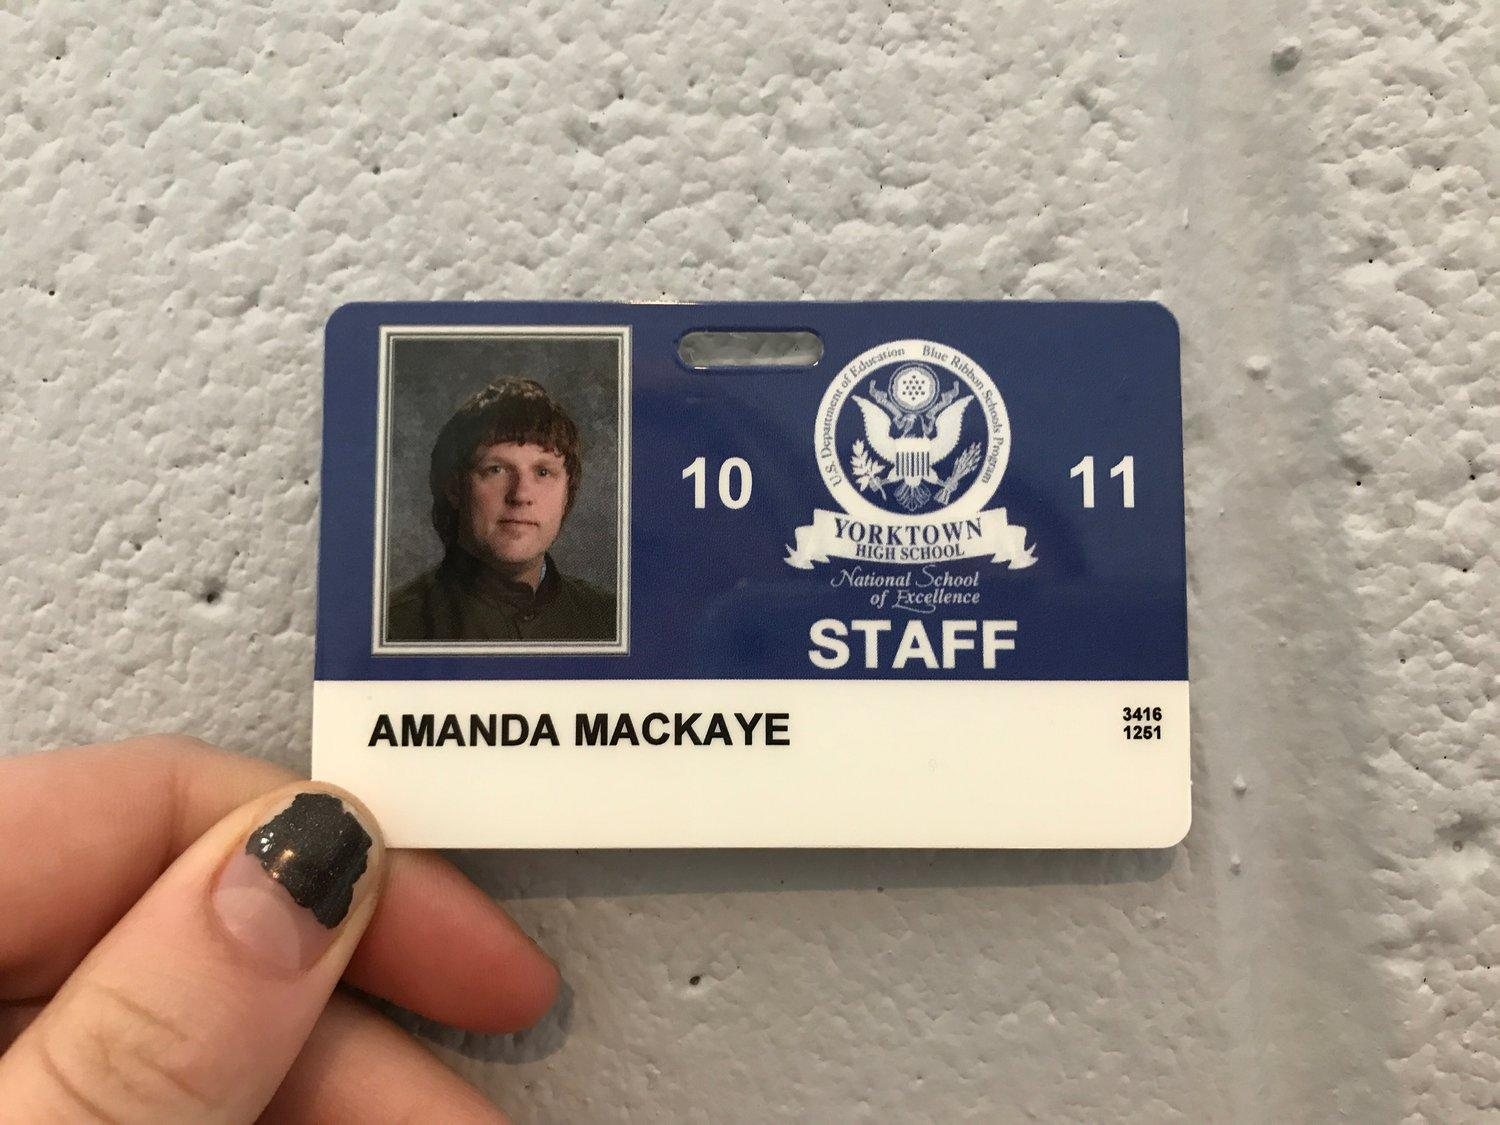 Ms. MacKaye is known for her humor and kindness